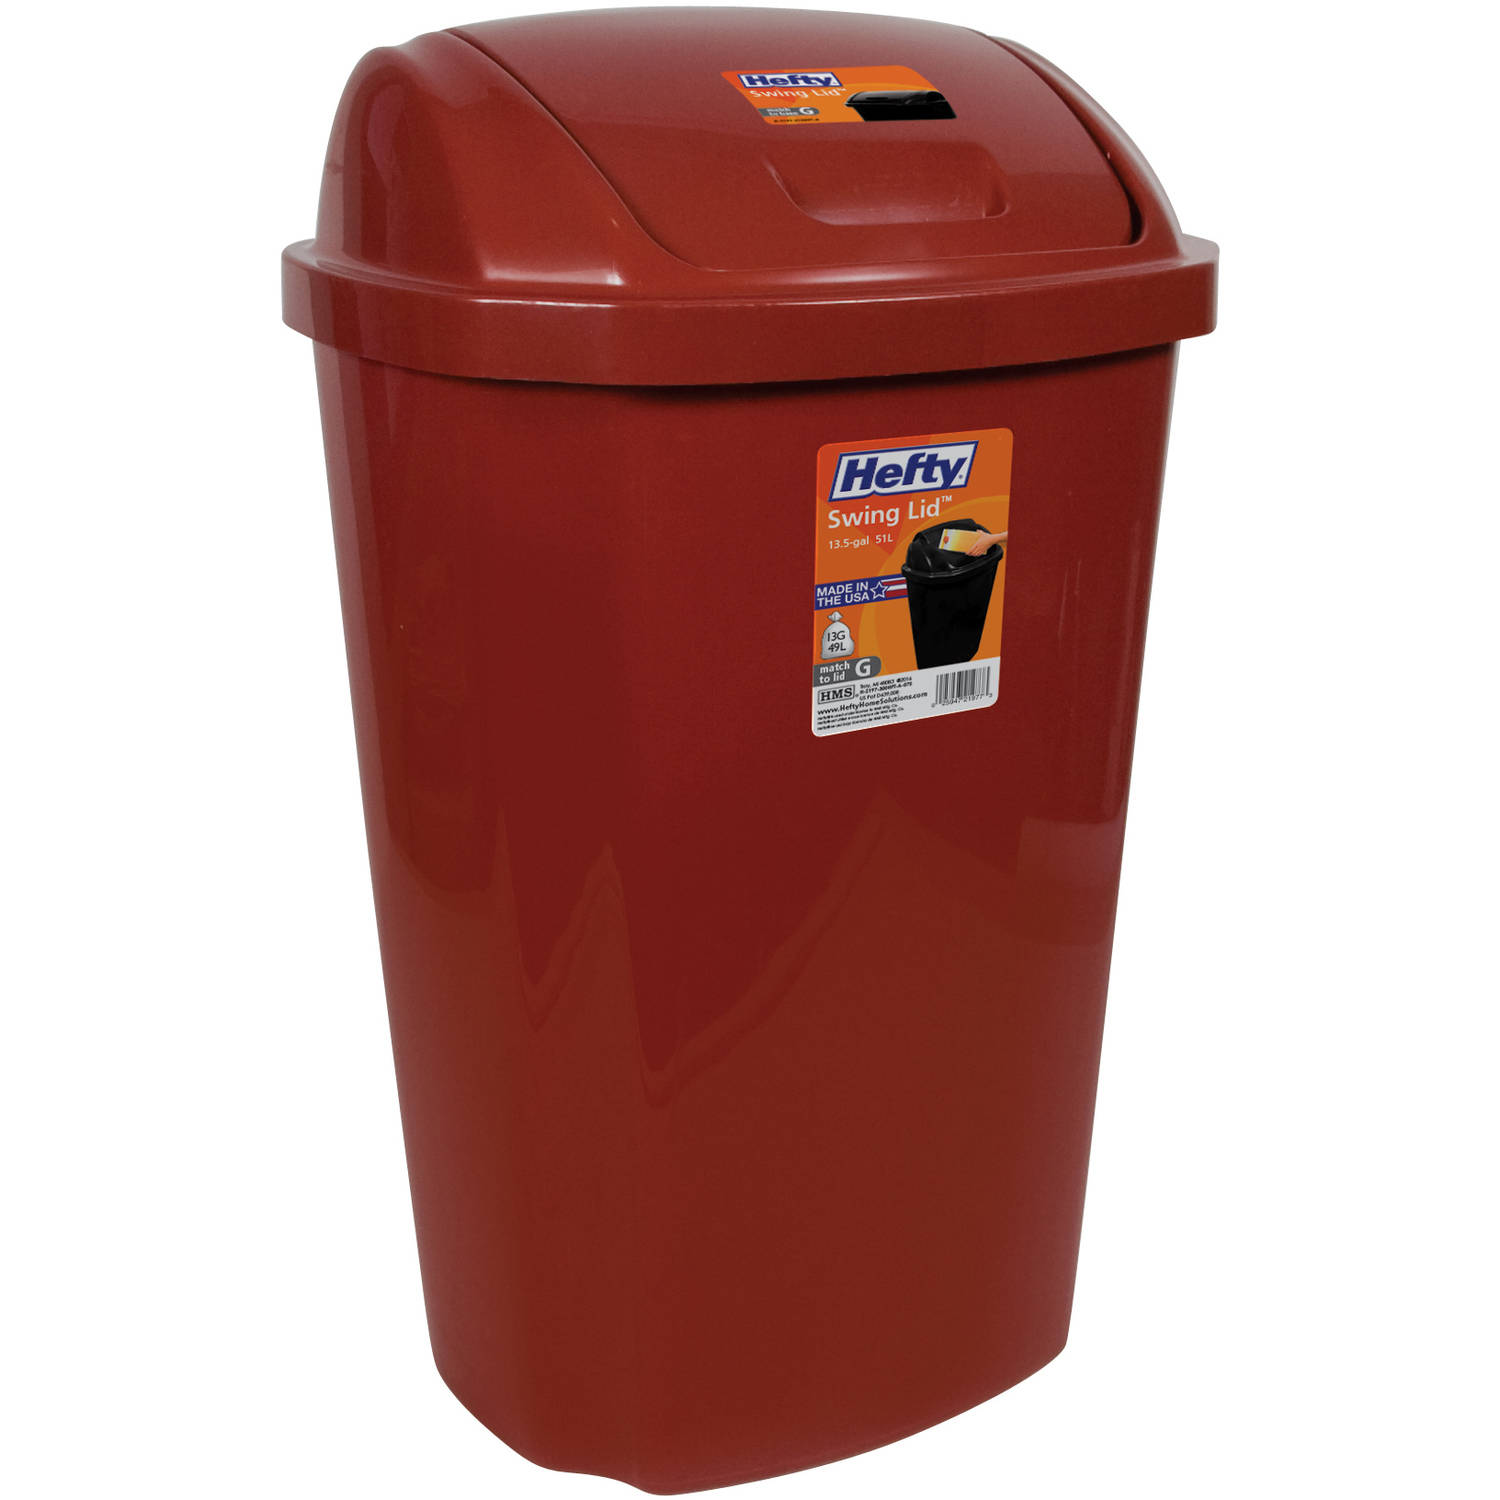 hefty 13.5 gallon swing lid trash can, red - walmart